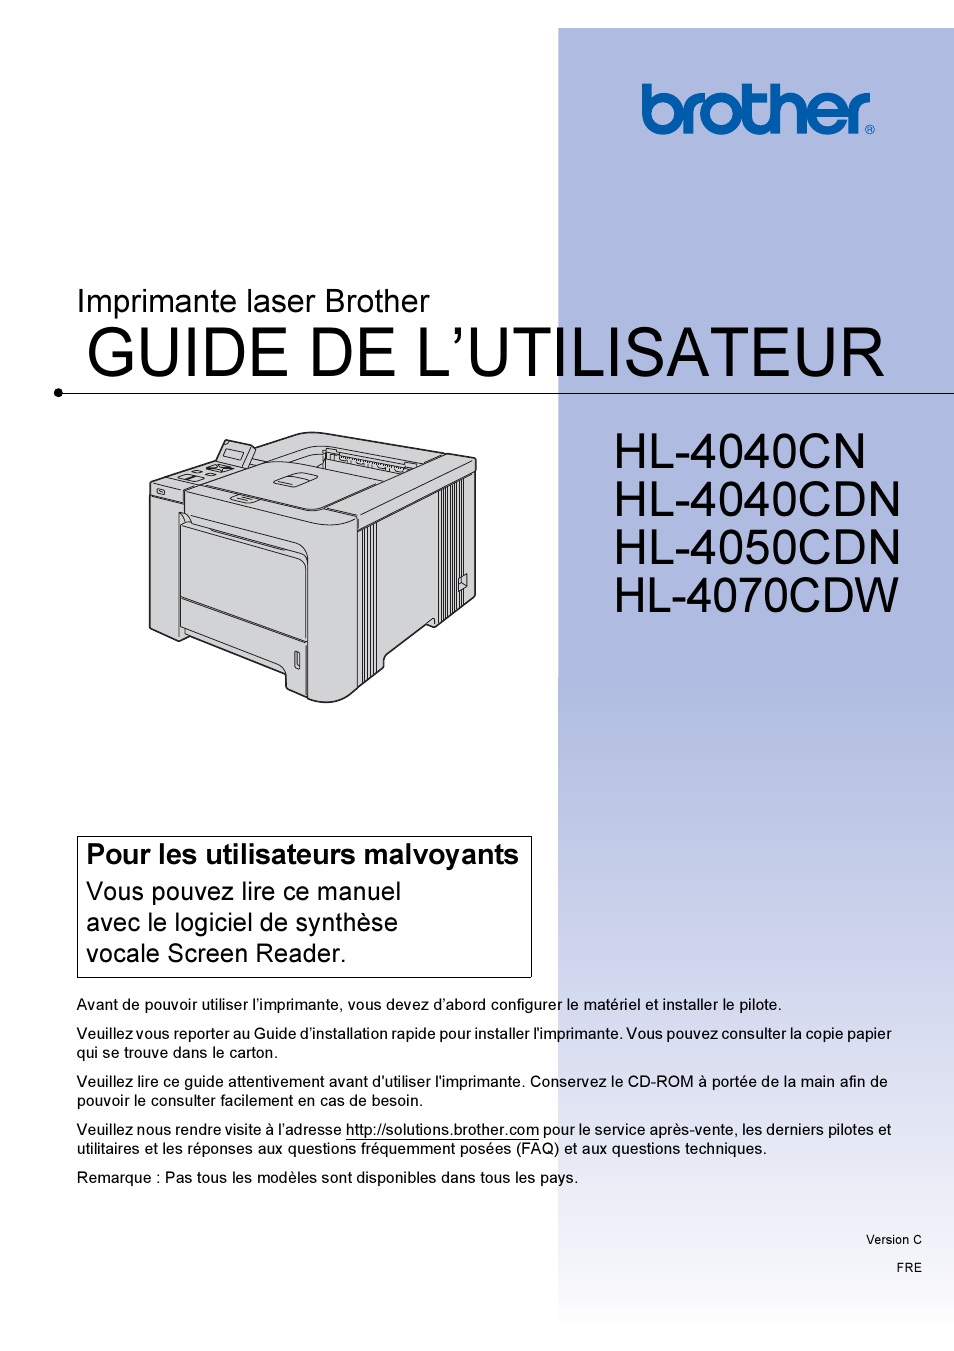 brother hl 4070cdw page1 brother hl 4070cdw manuel d'utilisation pages 213 aussi pour  at soozxer.org